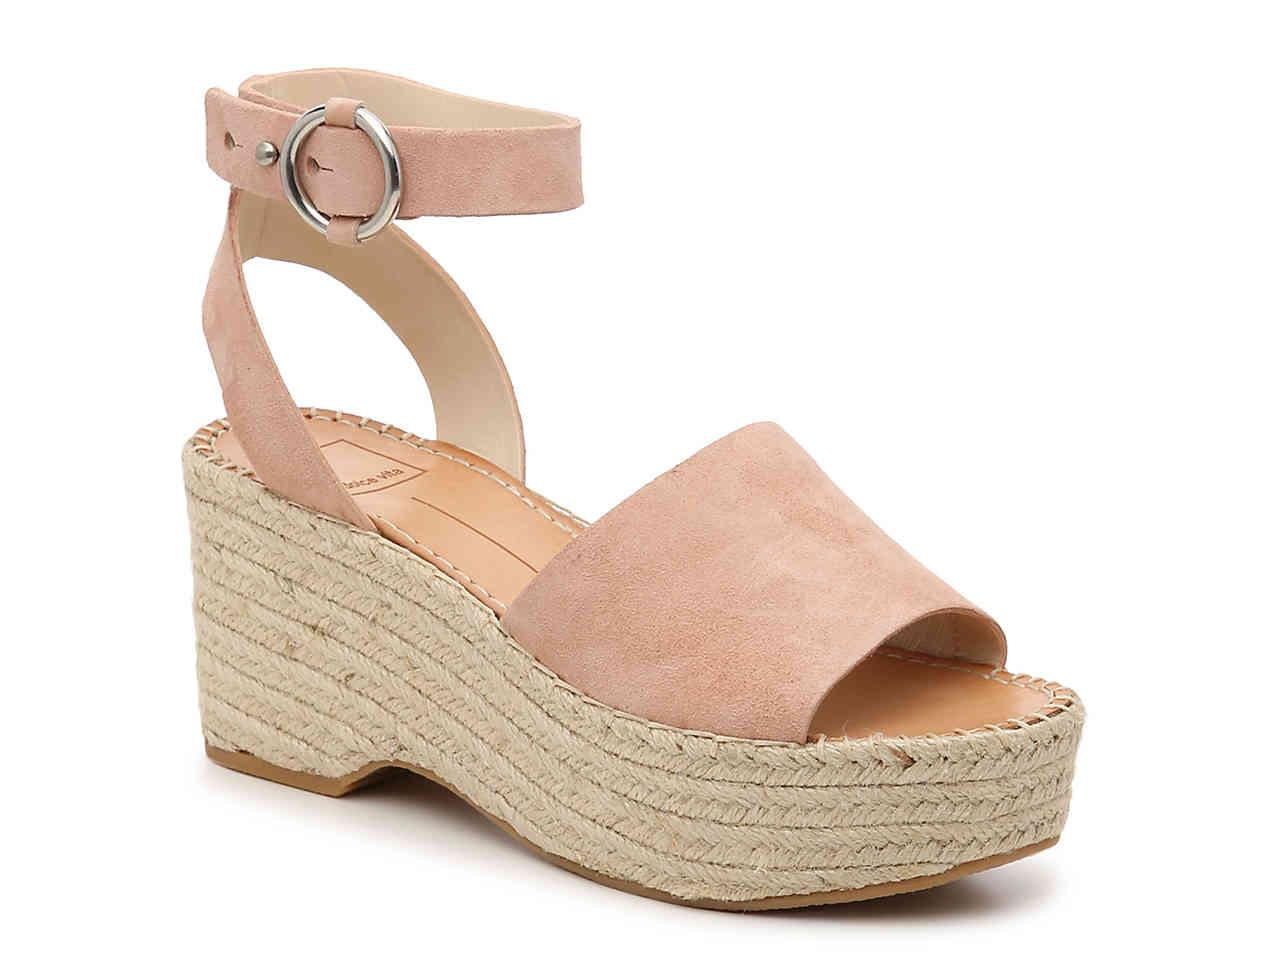 02711e153f8 Lyst - Dolce Vita Lesly Espadrille Wedge Sandal in Pink - Save 17%